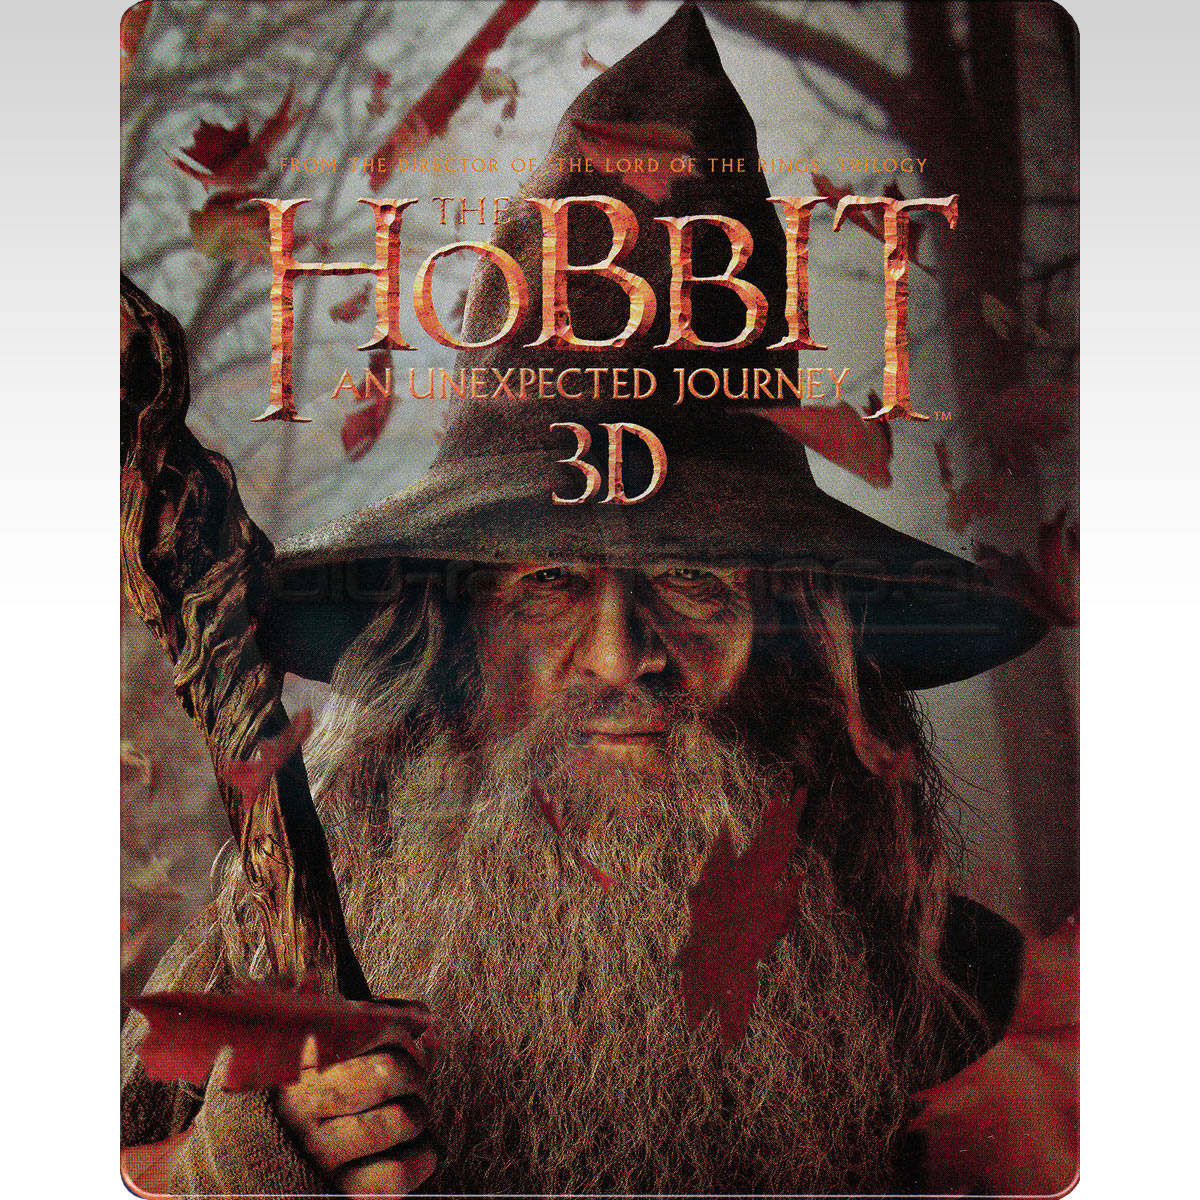 THE HOBBIT: AN UNEXPECTED JOURNEY 3D - THE HOBBIT: ΕΝΑ ΑΝΑΠΑΝΤΕΧΟ ΤΑΞΙΔΙ 3D Limited Collector's Edition Steelbook (2 BLU-RAY 3D + 2 BLU-RAY)